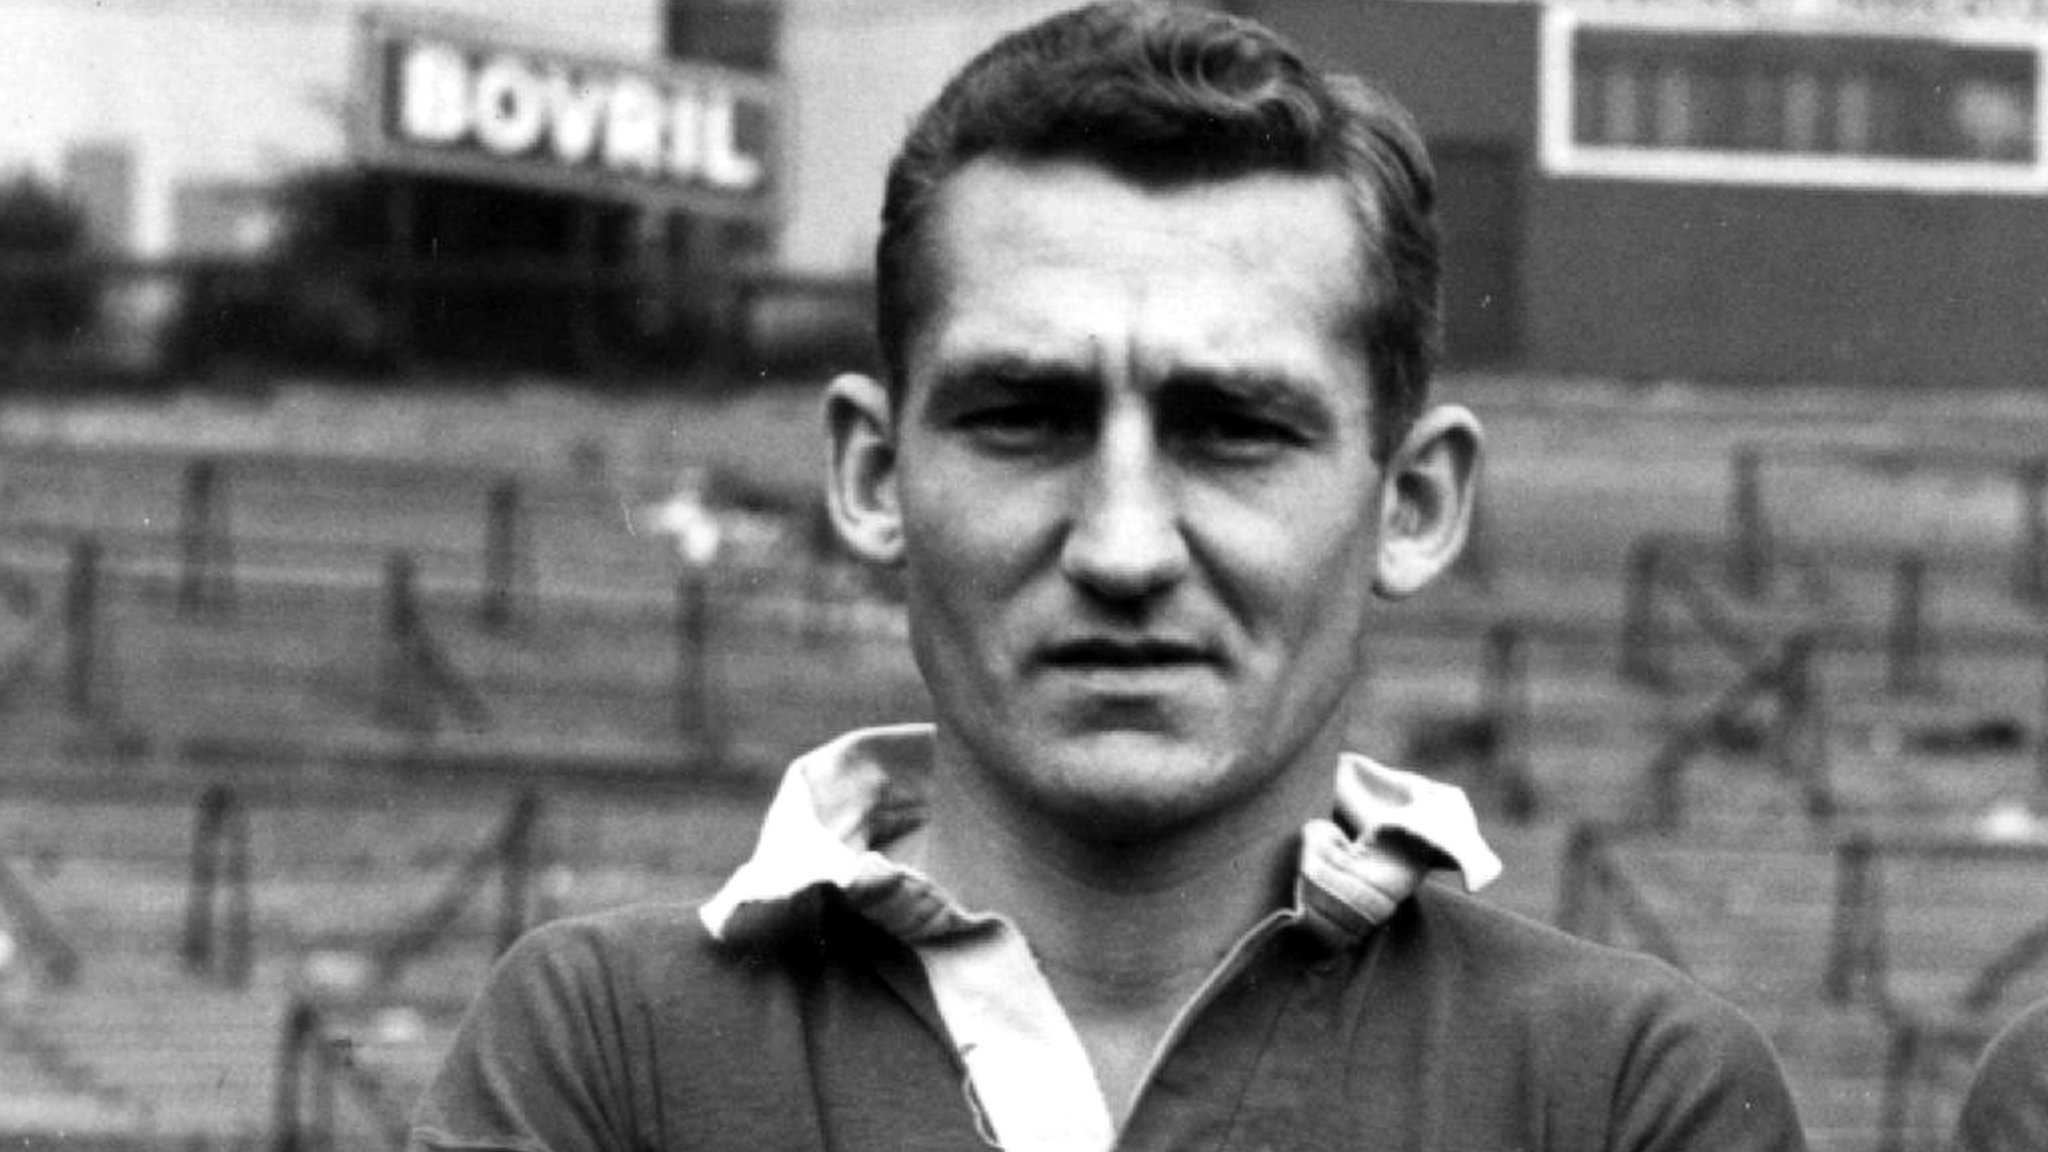 Roy Bentley - last surviving member of 1950 England World Cup squad - dies at 93